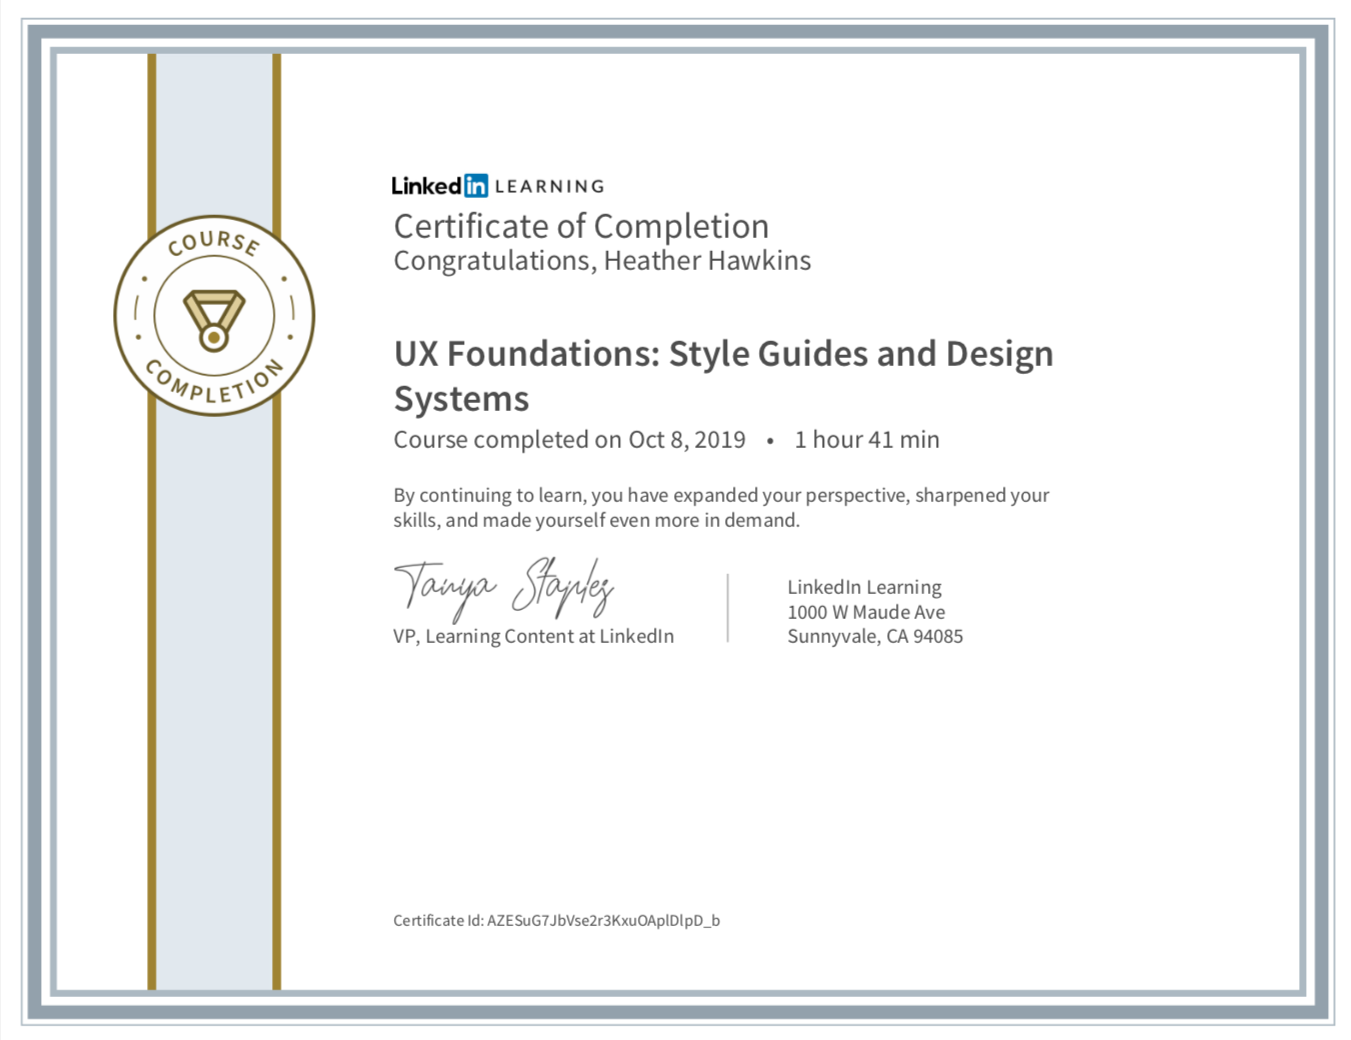 Certificate of completion from LinkedIn Learning. UX Foundations: Style Guides & Design Systems.